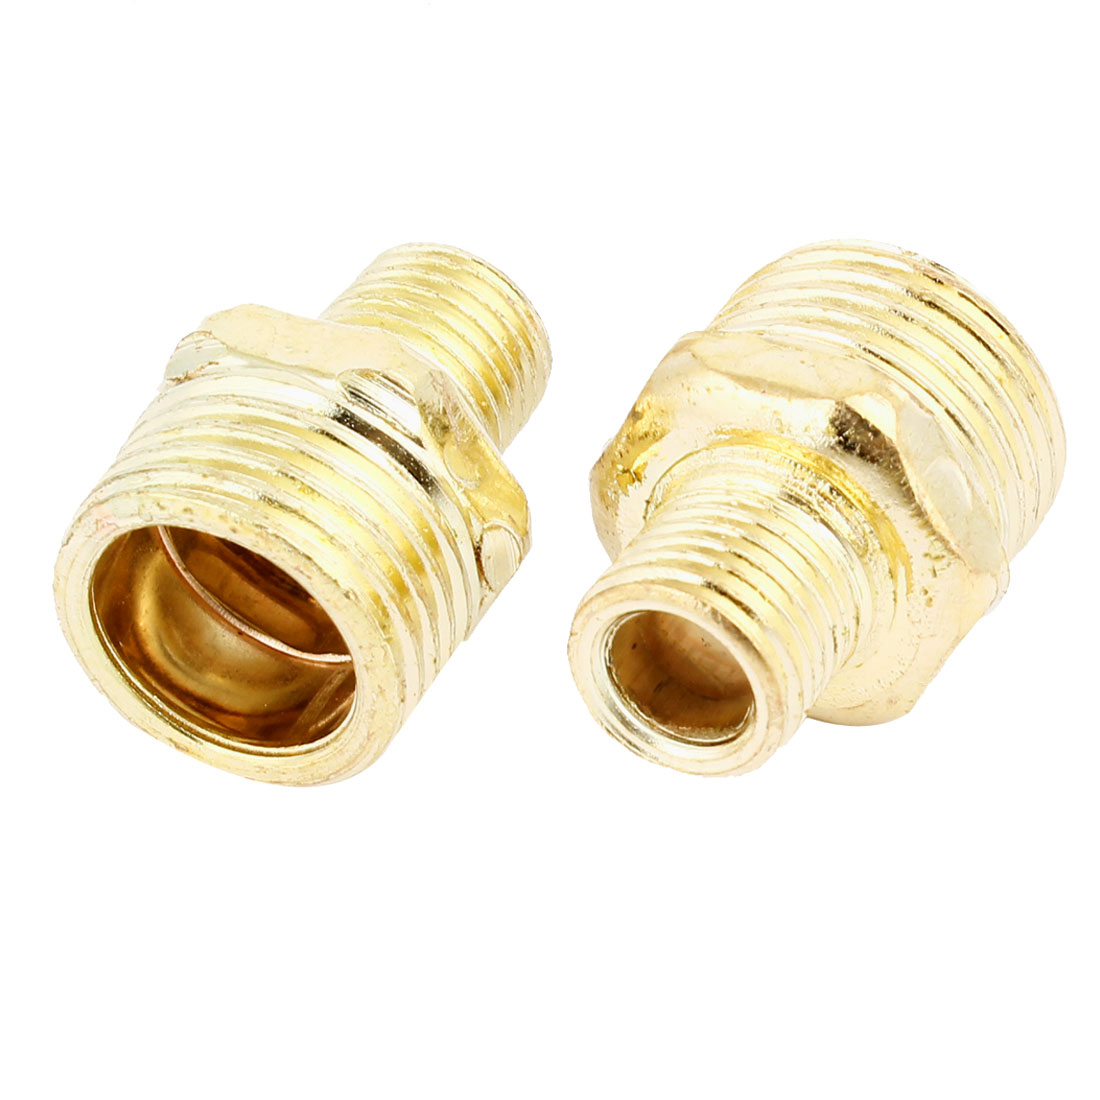 2 Pcs Pneumatic Air Pipe 1/8 PT to 1/2PT M/M Thread Brass Hex Reducing Nipple